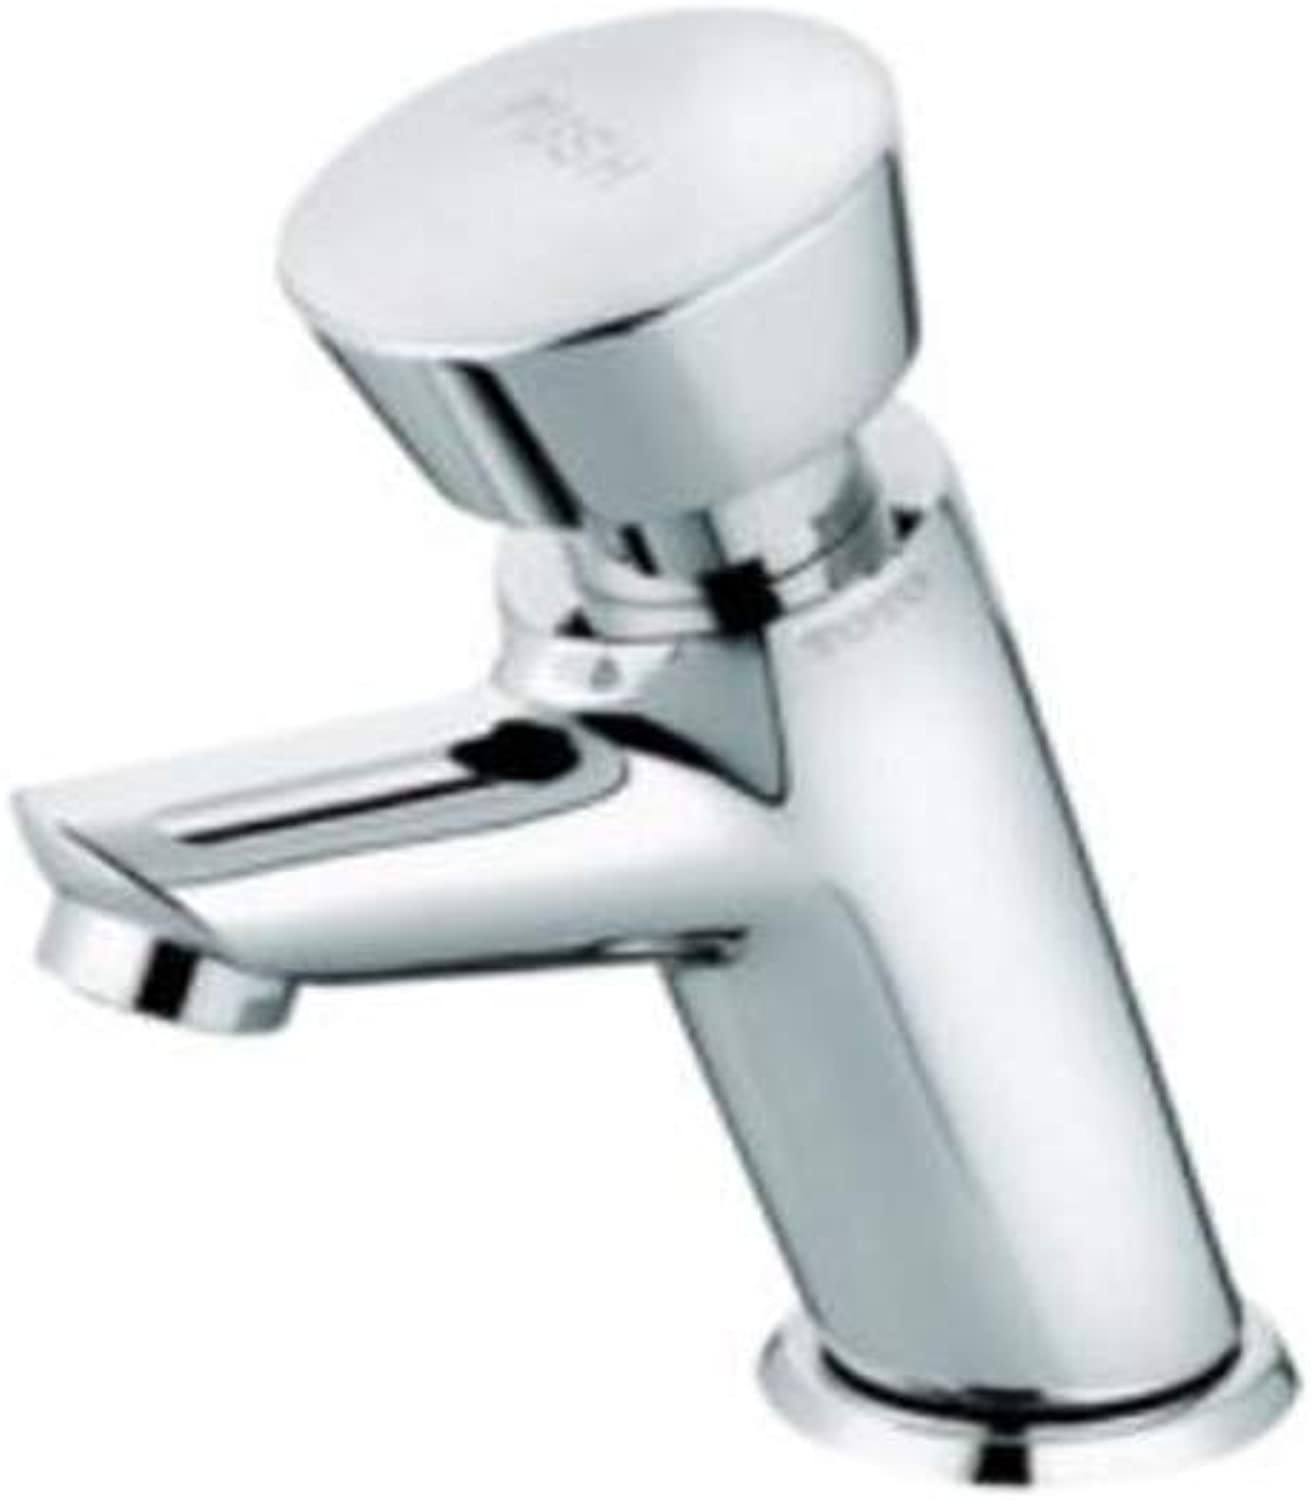 Basin Mixer Tap Hot and Cold Water Single Hole Single Handle Wash Basin Wash Basin Hand Pressure Nozzle